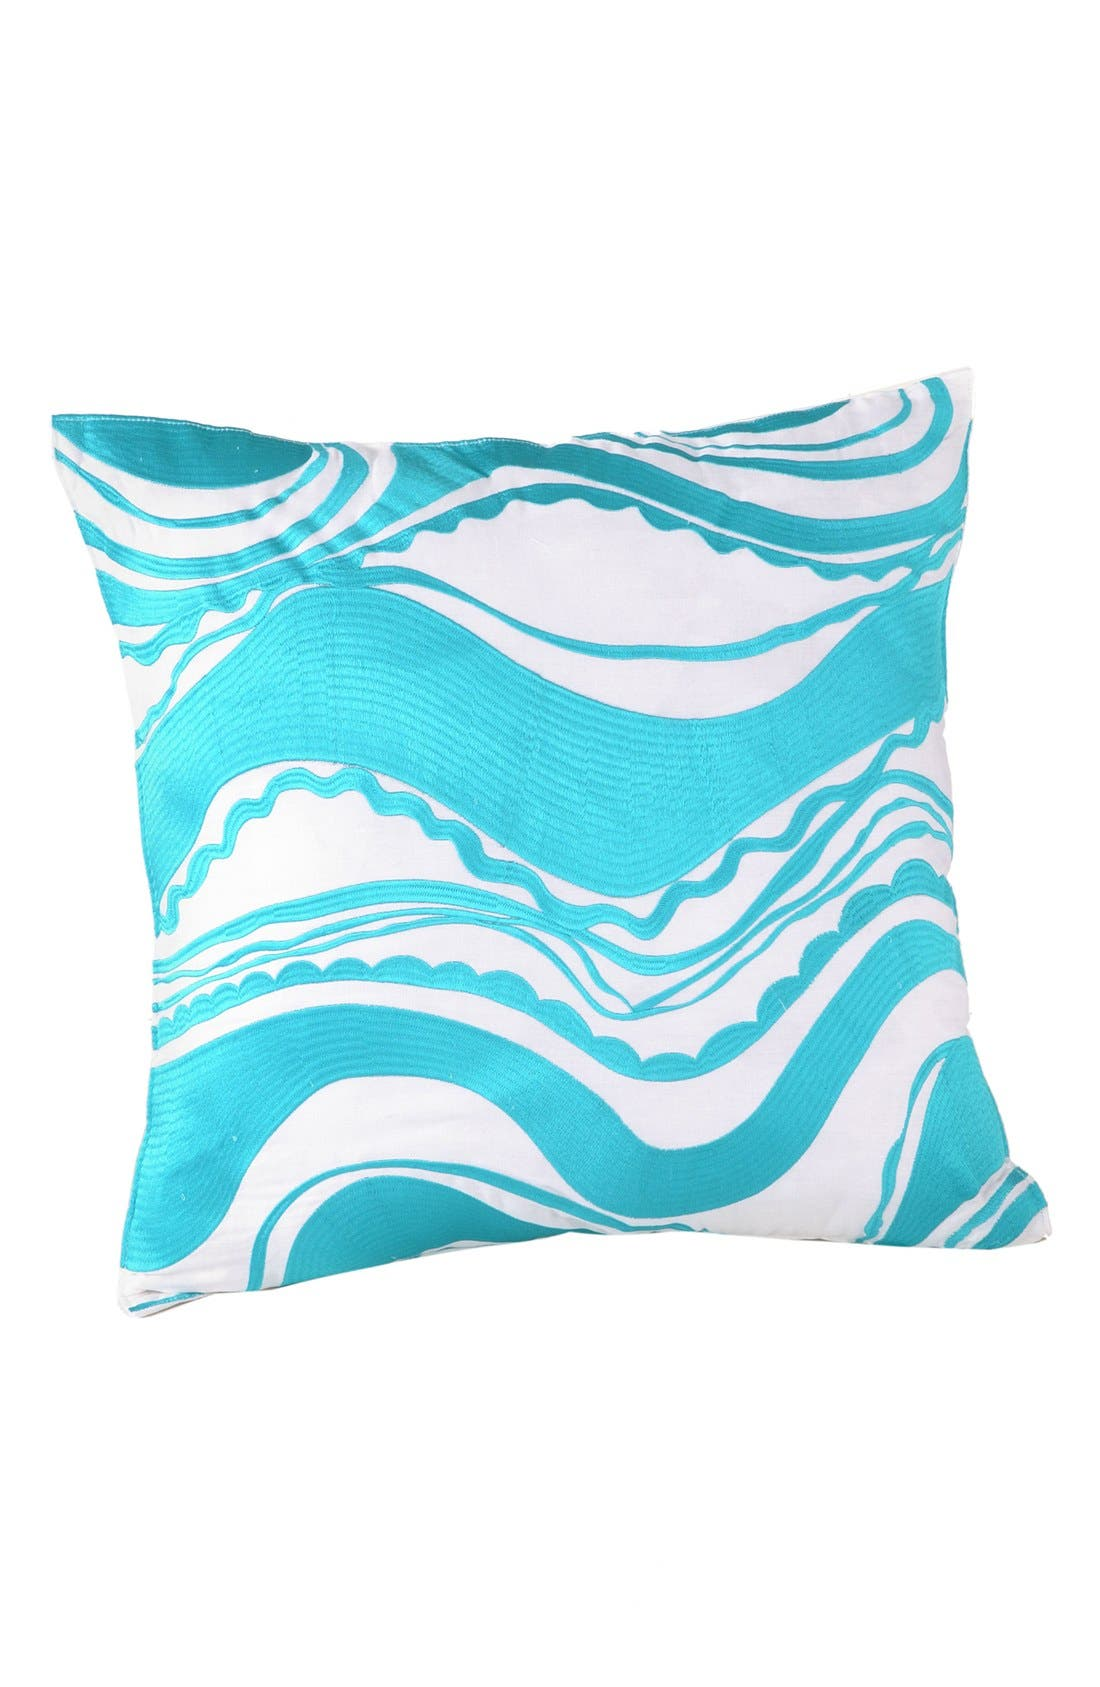 Alternate Image 1 Selected - Trina Turk 'Horizon Stripe' Pillow